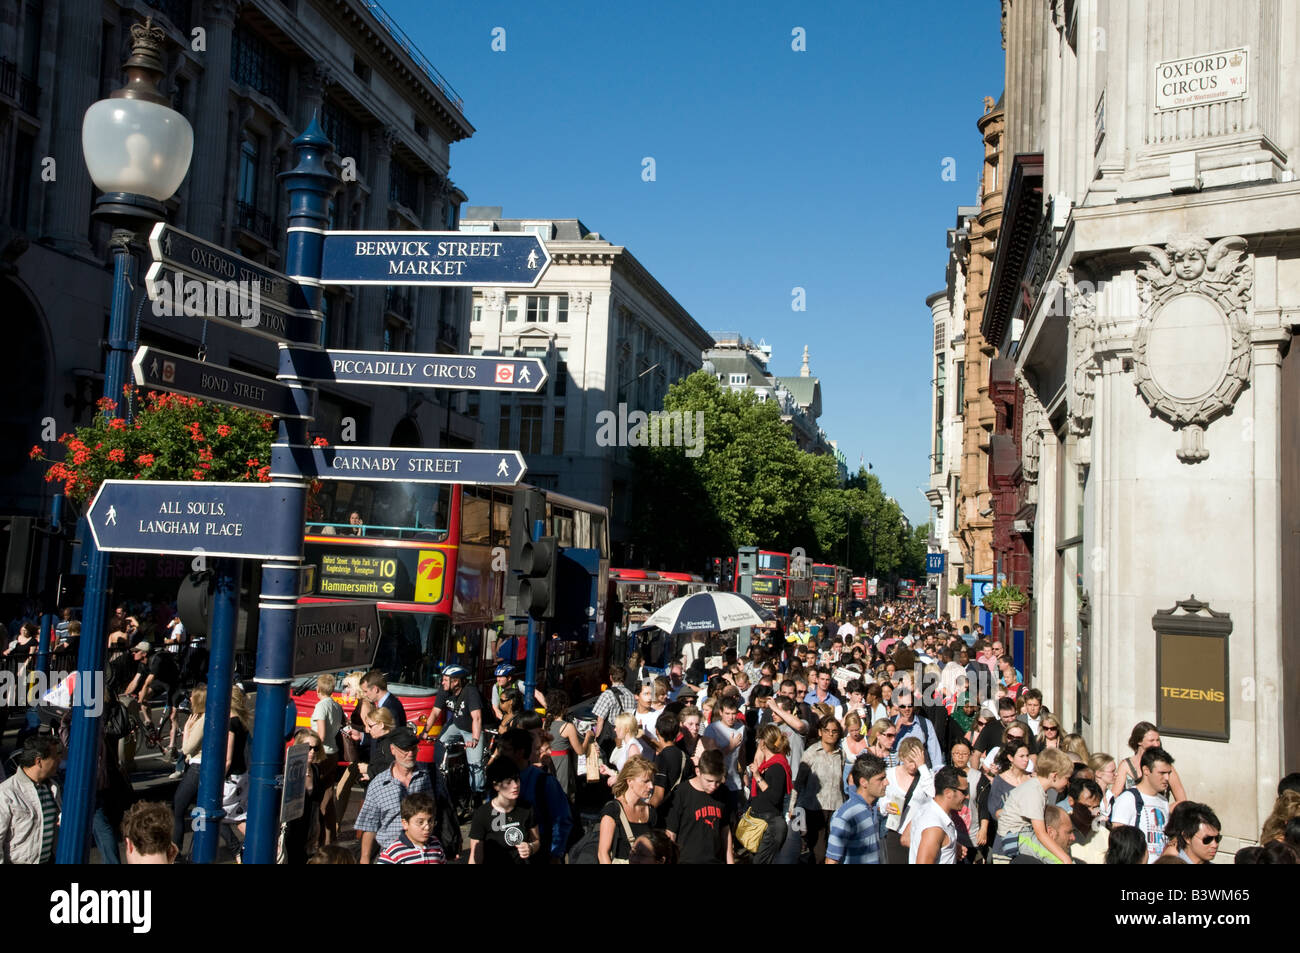 Crowds of shoppers on Oxford Street London England UK - Stock Image